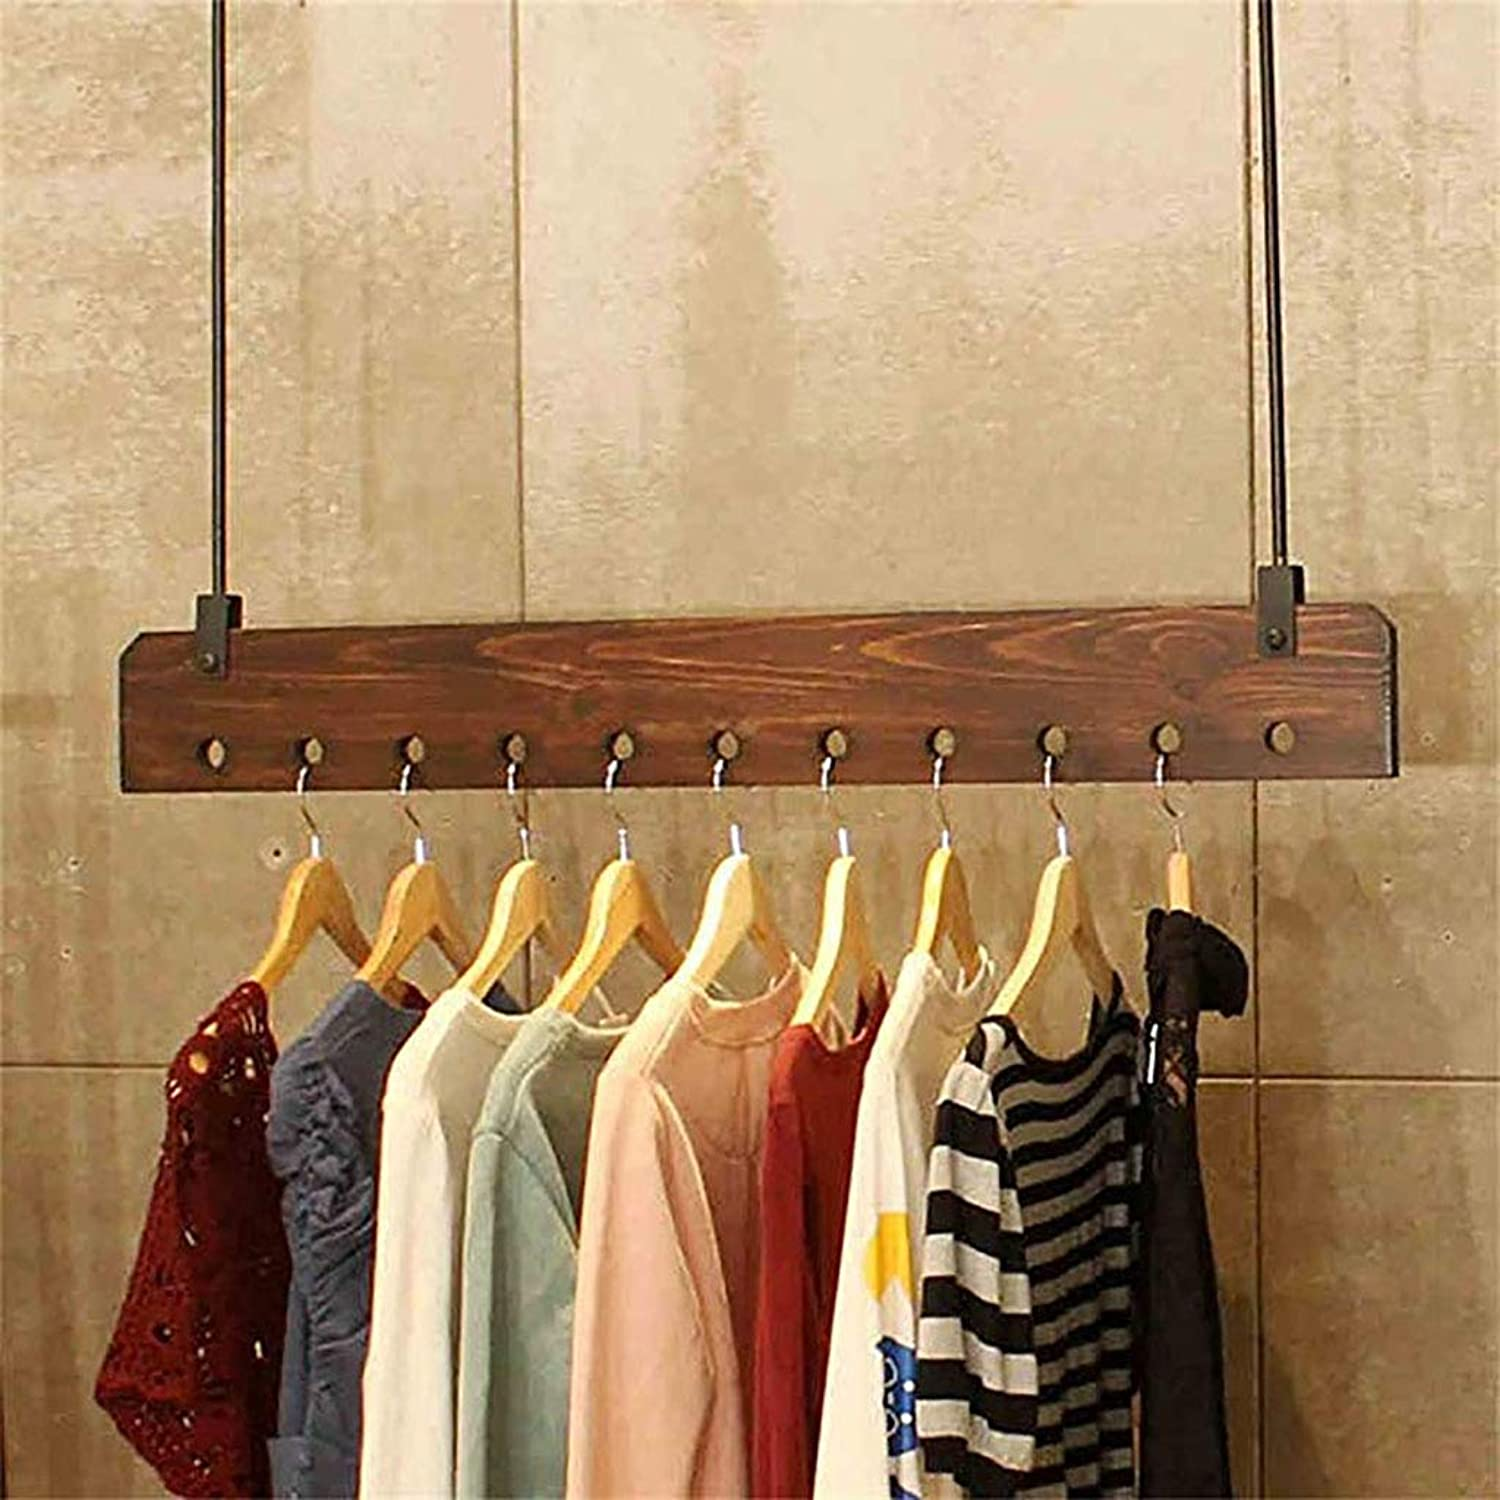 Wooden Wall Mounted Clothes Hanging for Home Clothing Store,Racks Display Stand,Wall Shelf,Display Shelves,Clothing Rack (Size   80 cm)